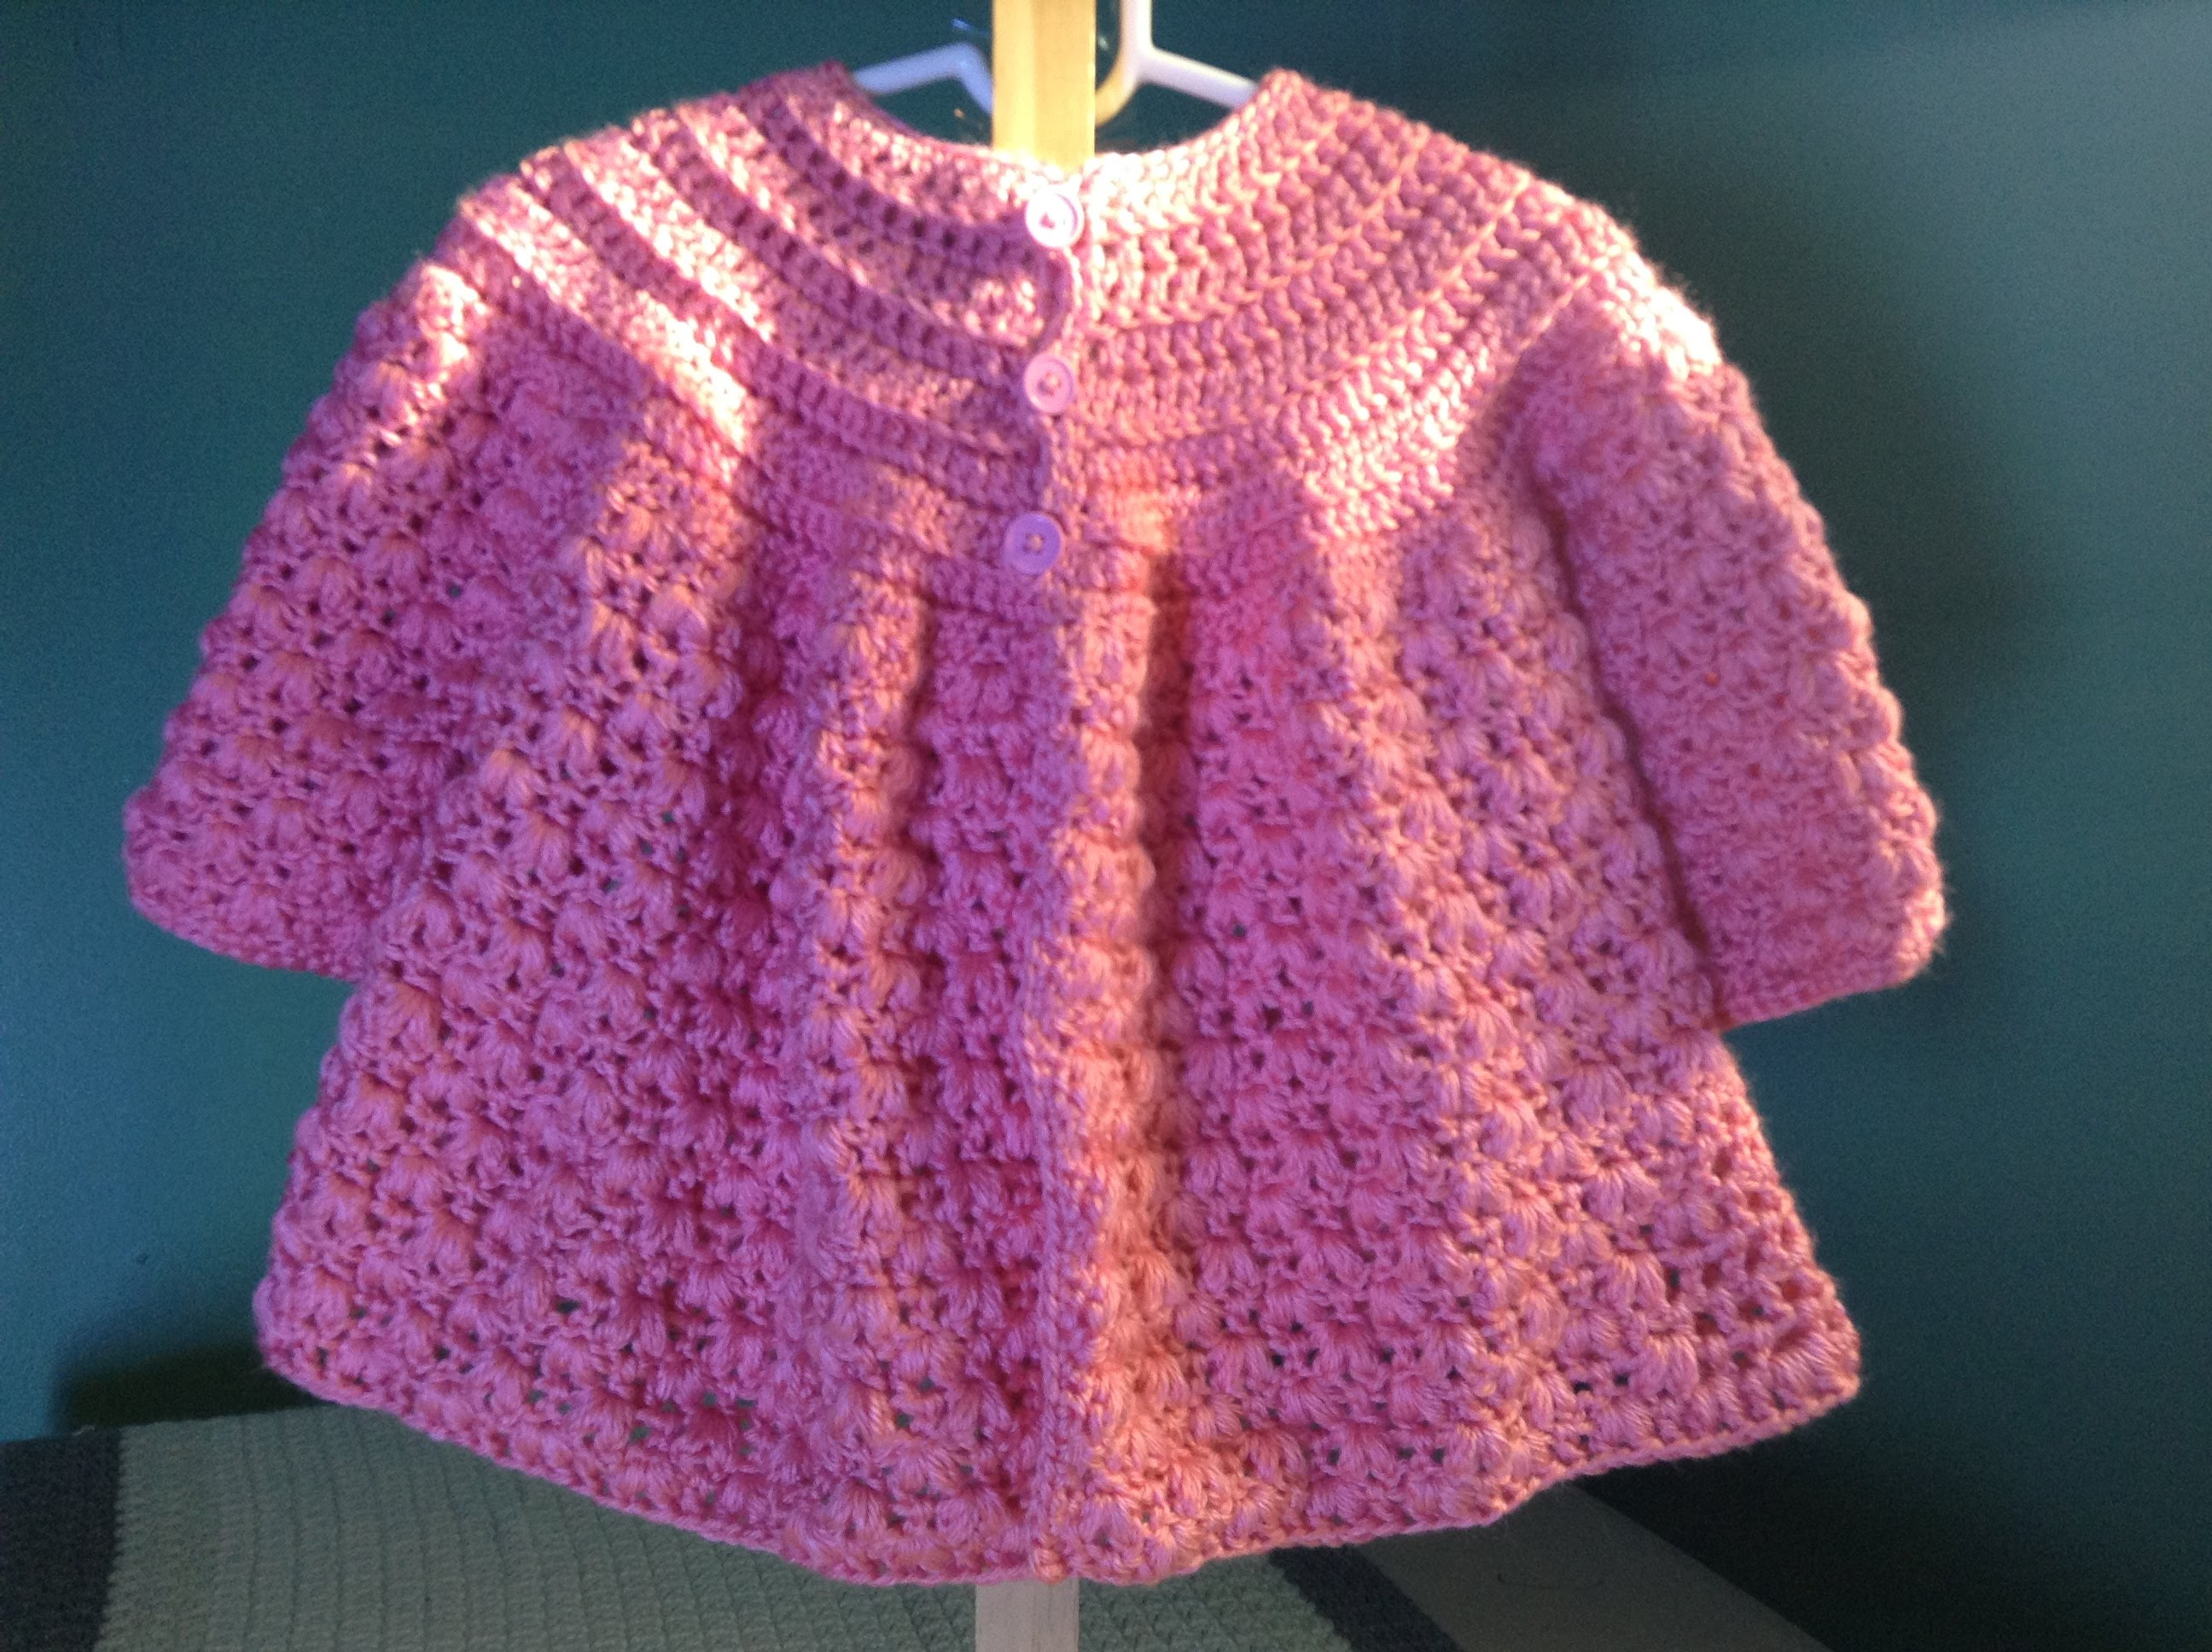 crochet baby sweater how to crochet a baby sweater - youtube TYJDGOP